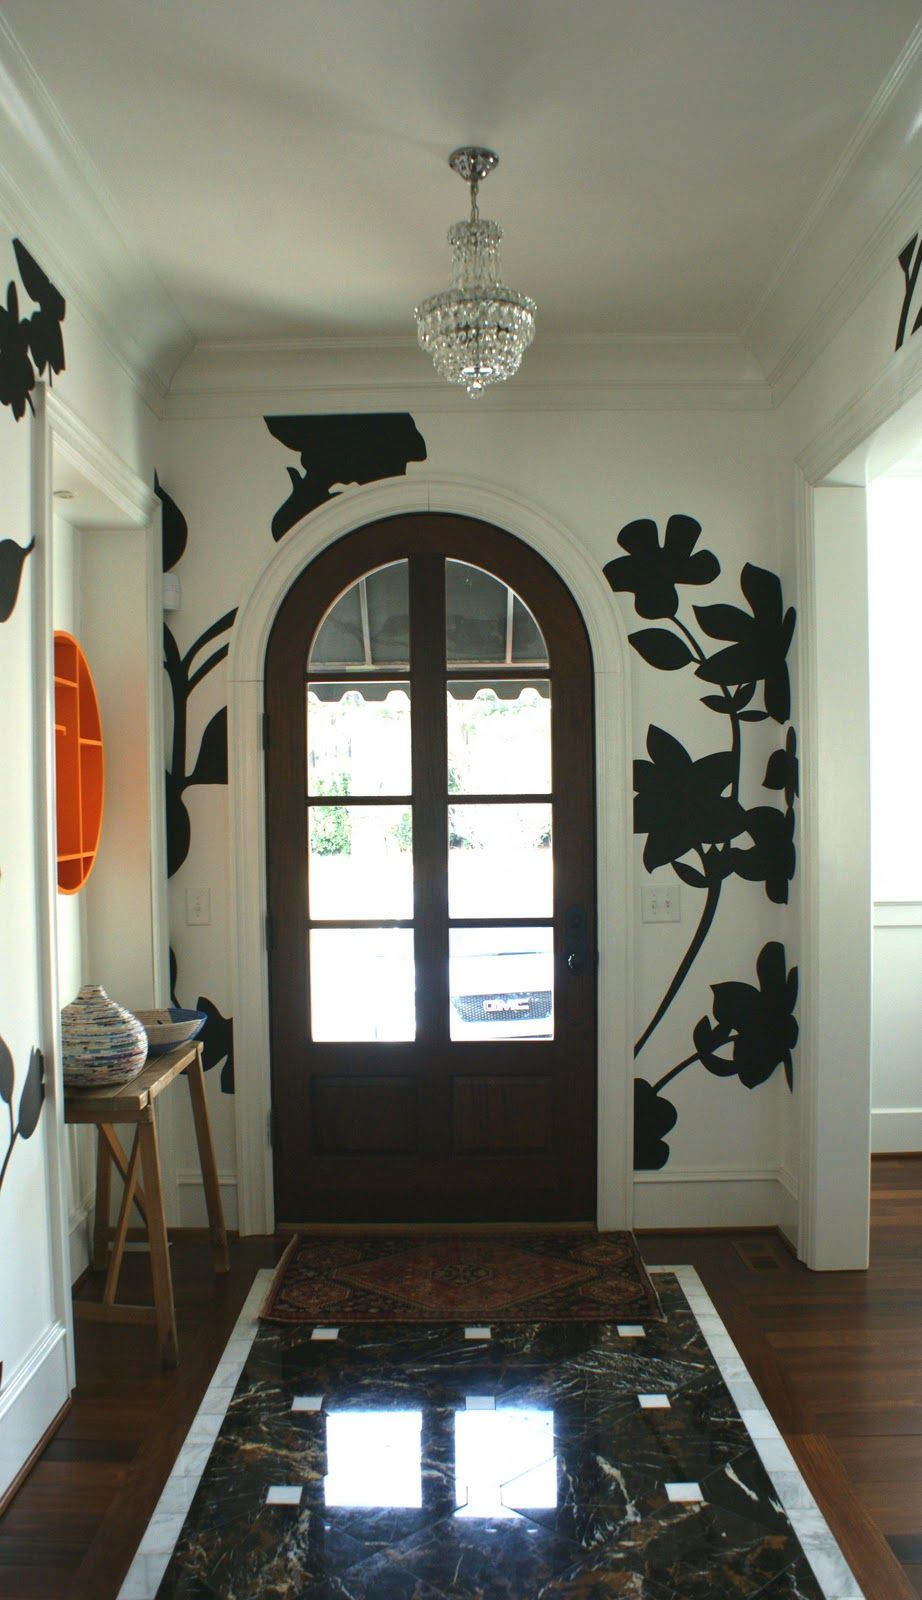 Handpainted walls by Raines Thompson. Designed by Ashley and Bonner Gaylord.